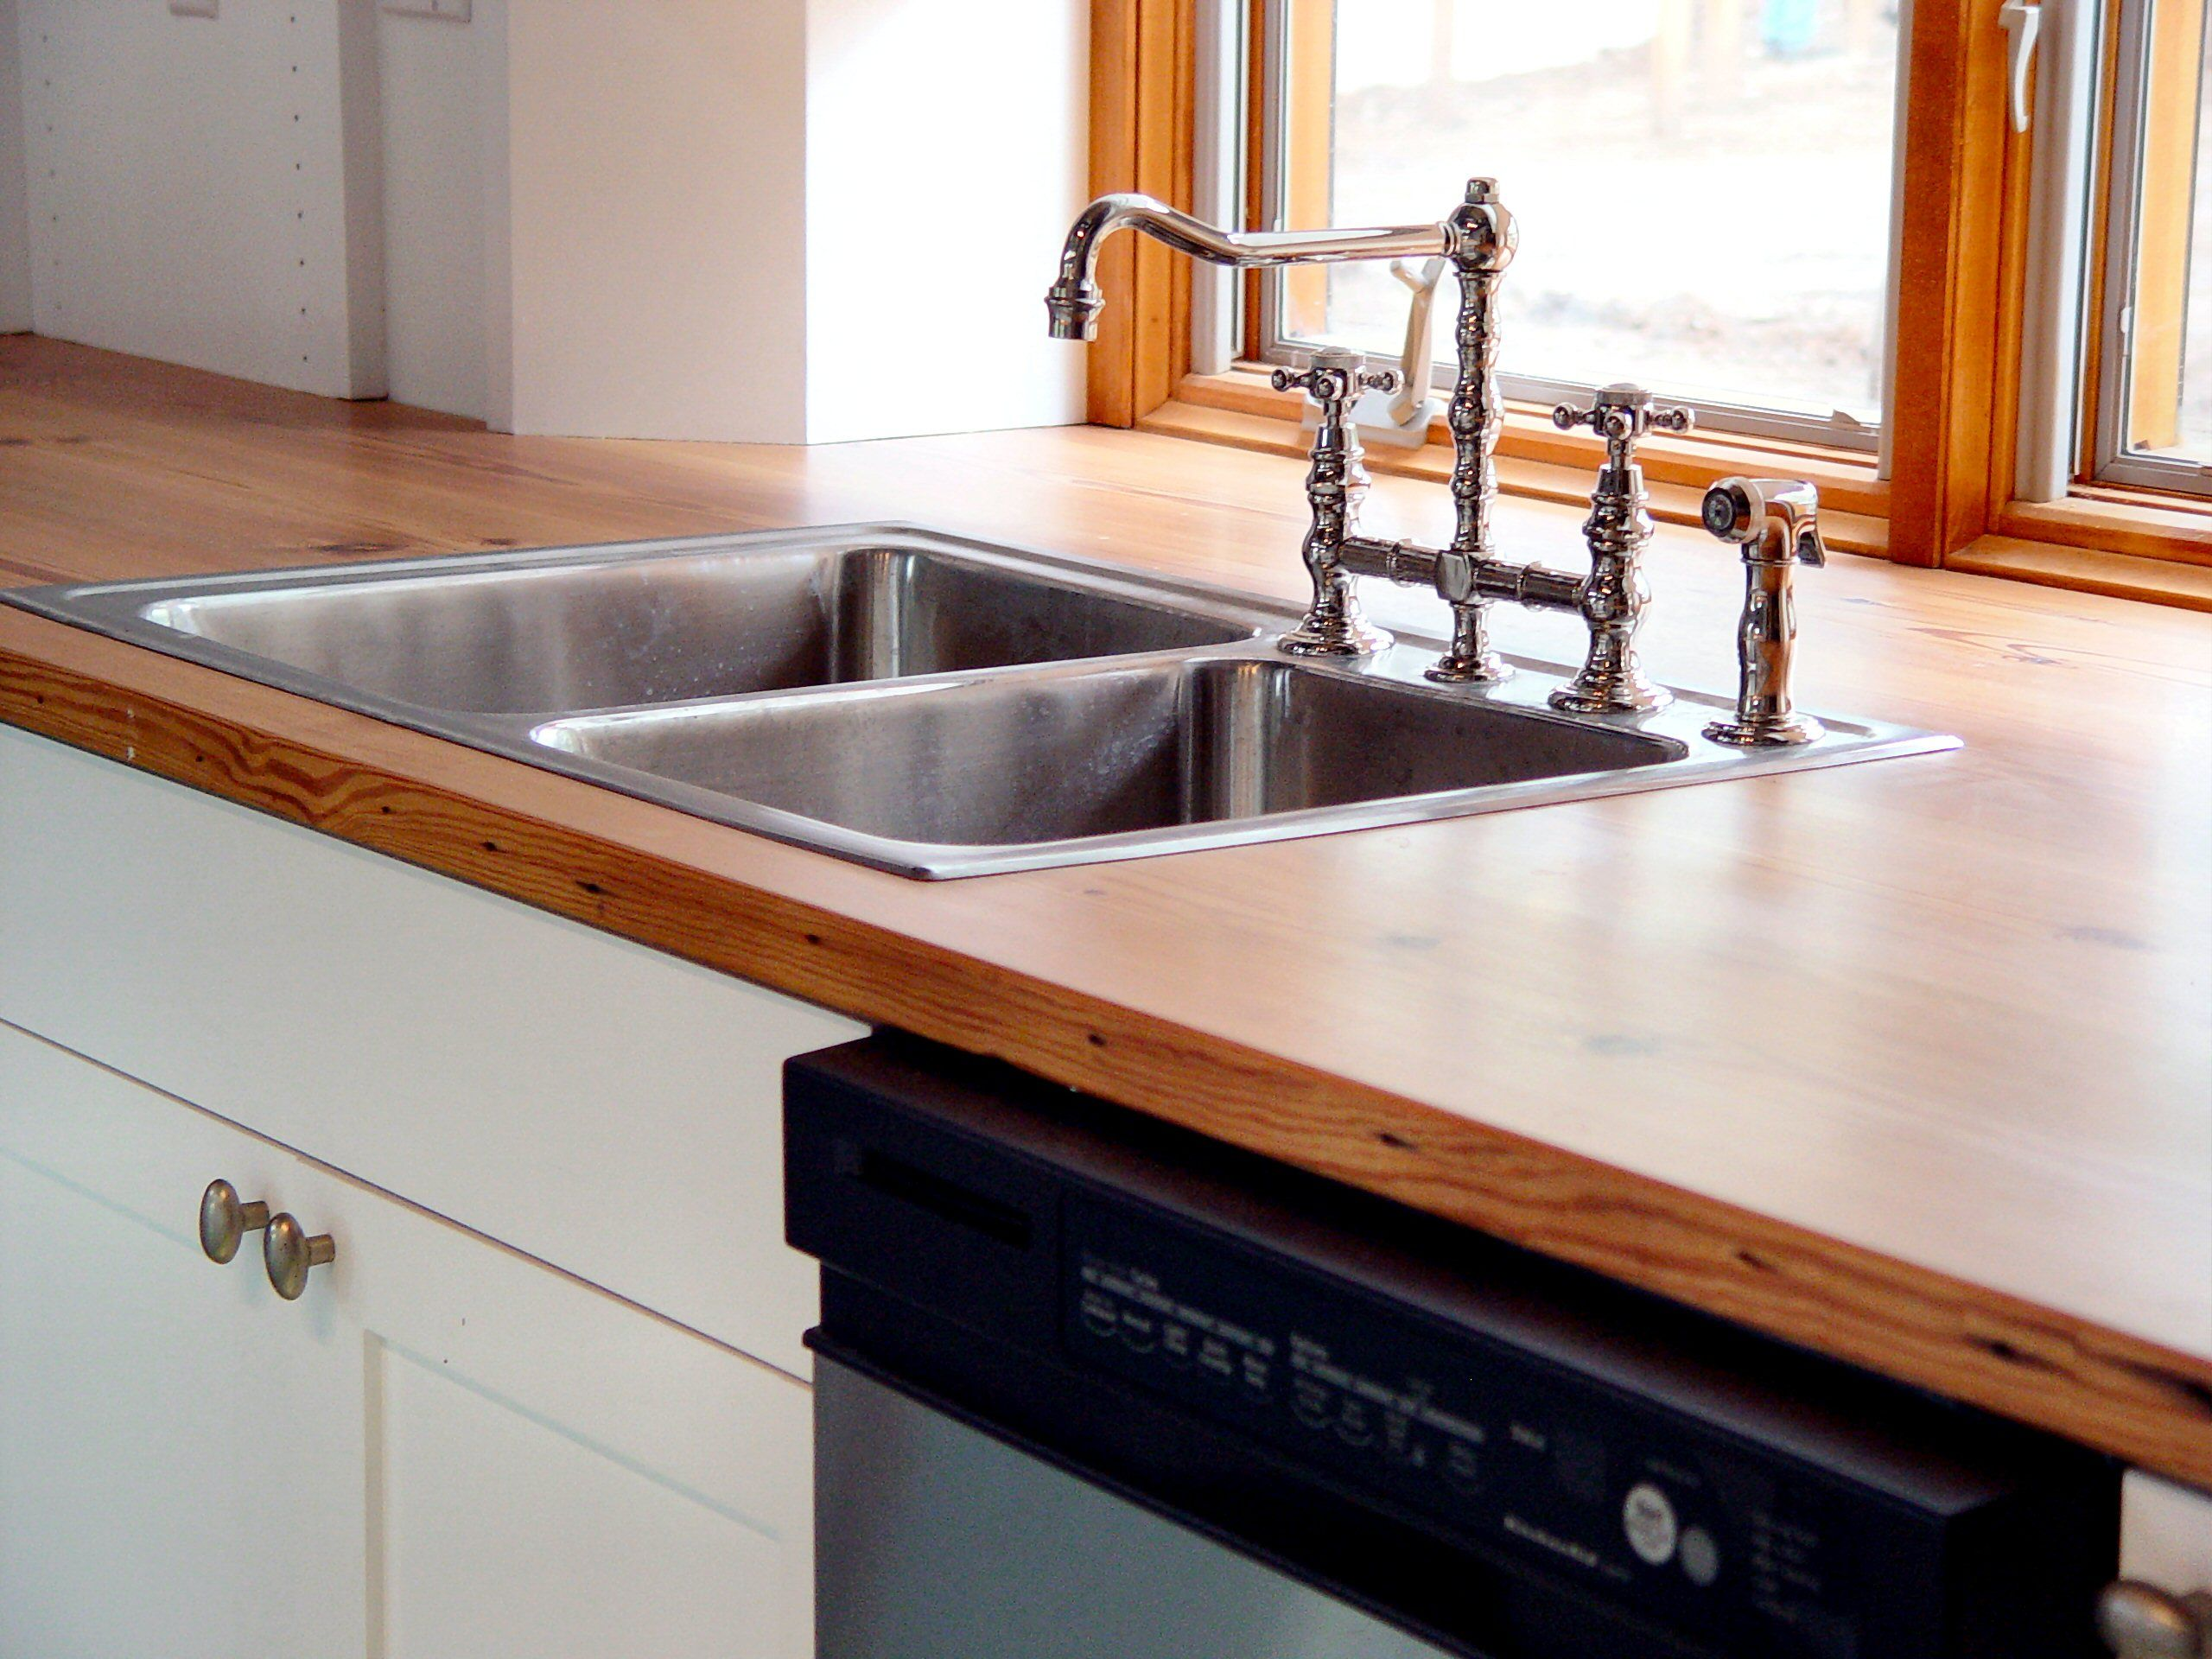 Custom Solid Wood Reclaimed Antique Longleaf Pine Counter Top With Top Mount Sink Wood Countertops Kitchen Wood Countertops Countertops